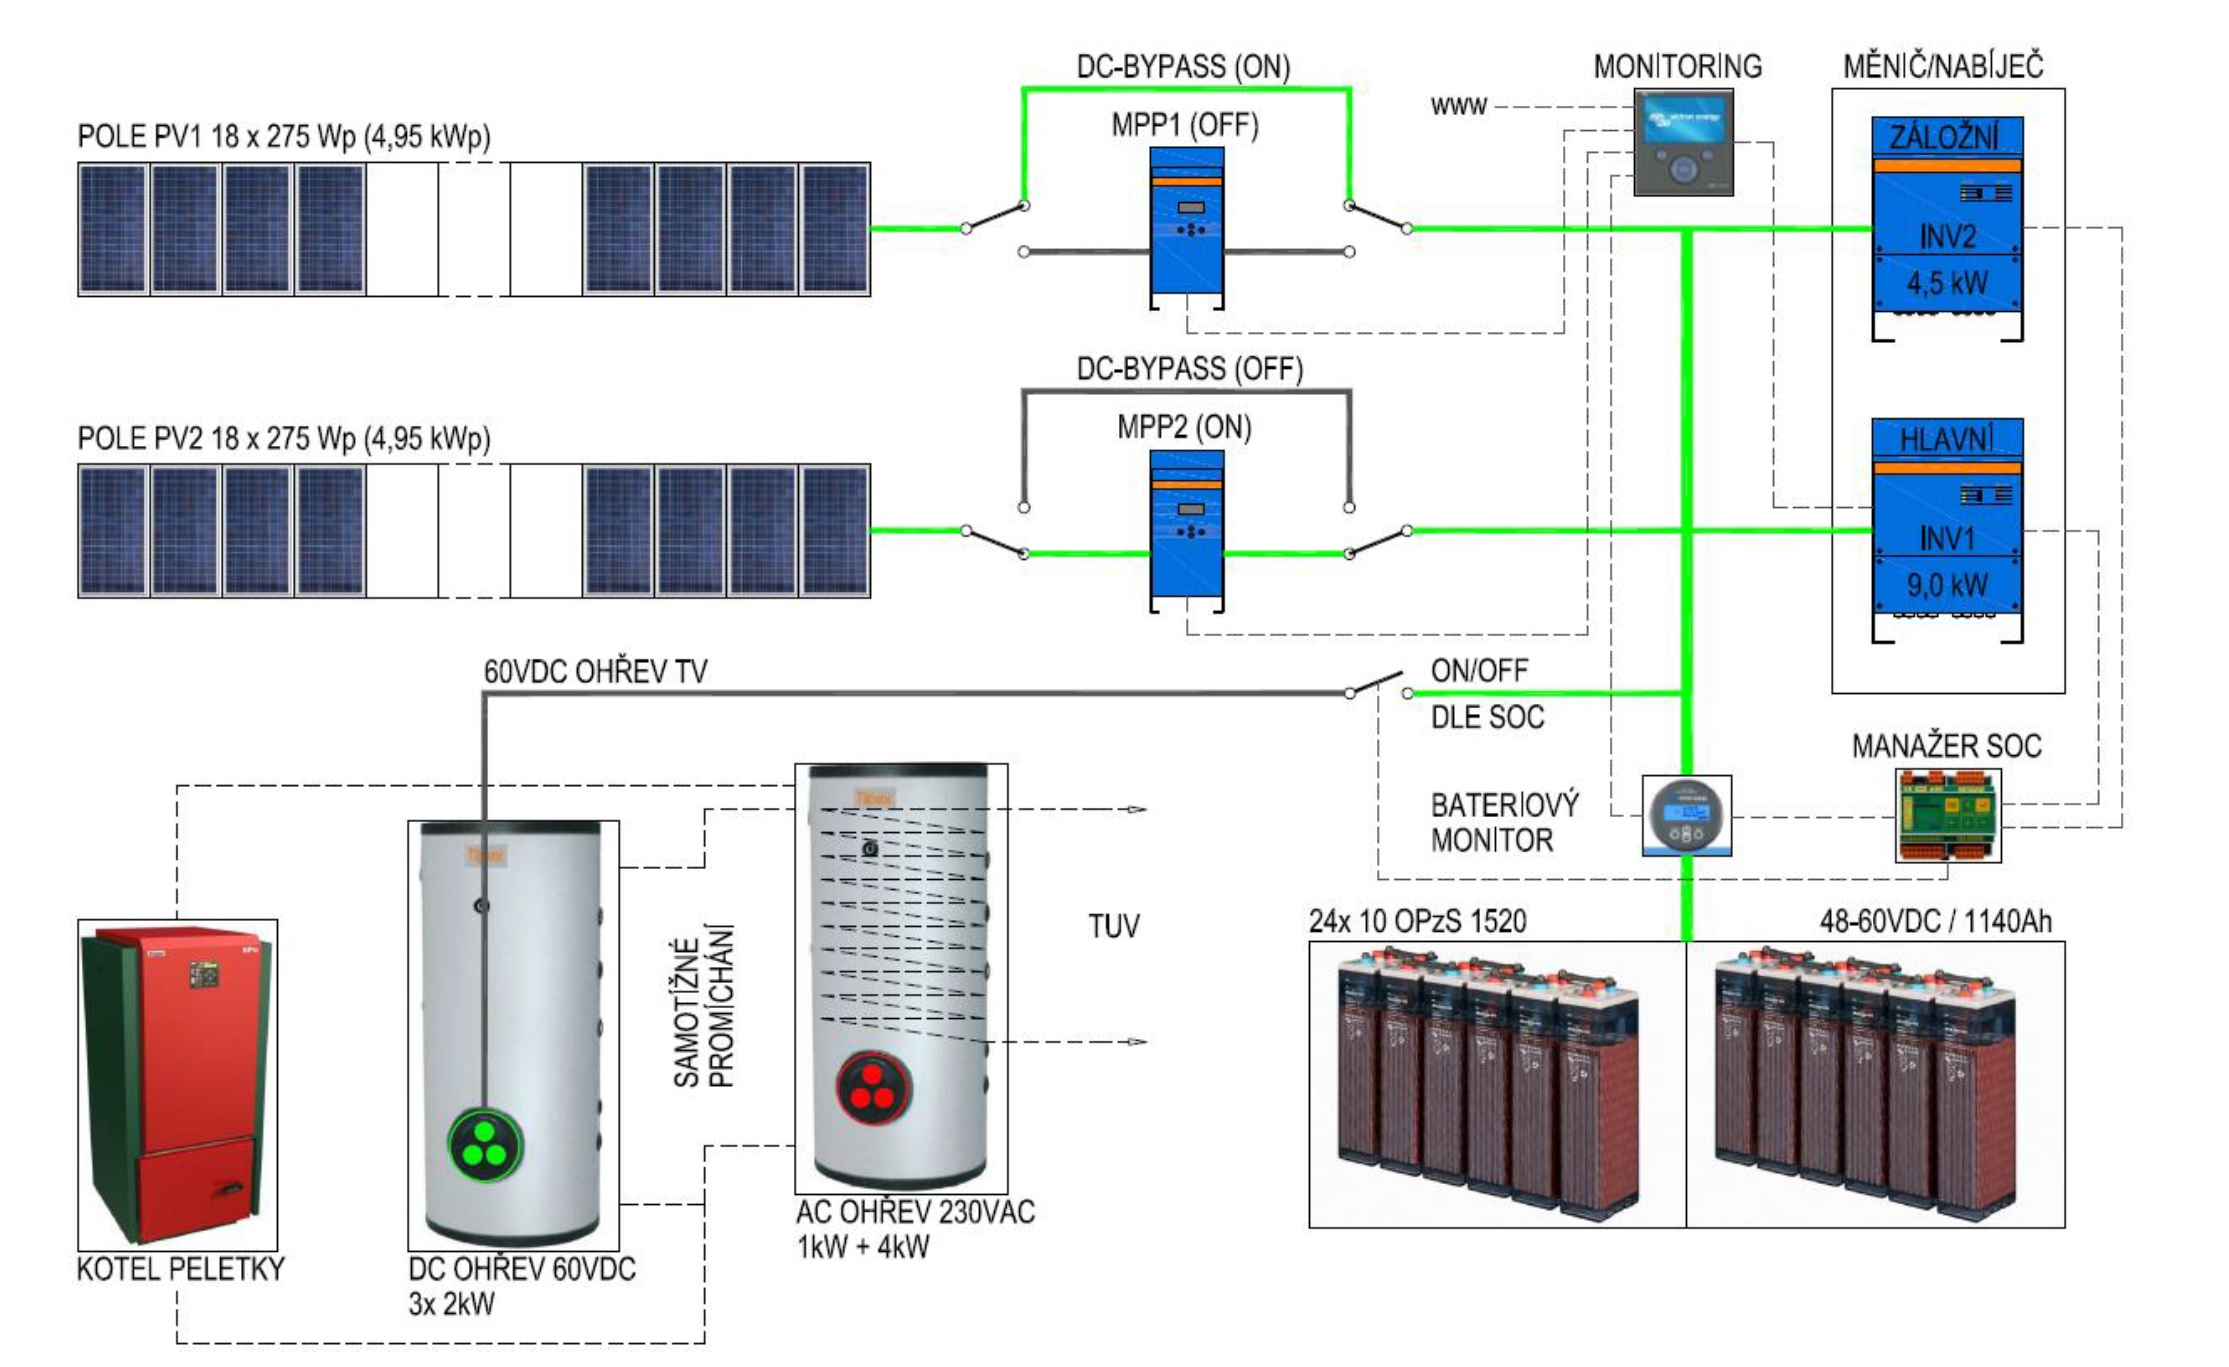 victron inverter wiring diagram Download-Main DC circuits of the PV off grid system 12-c